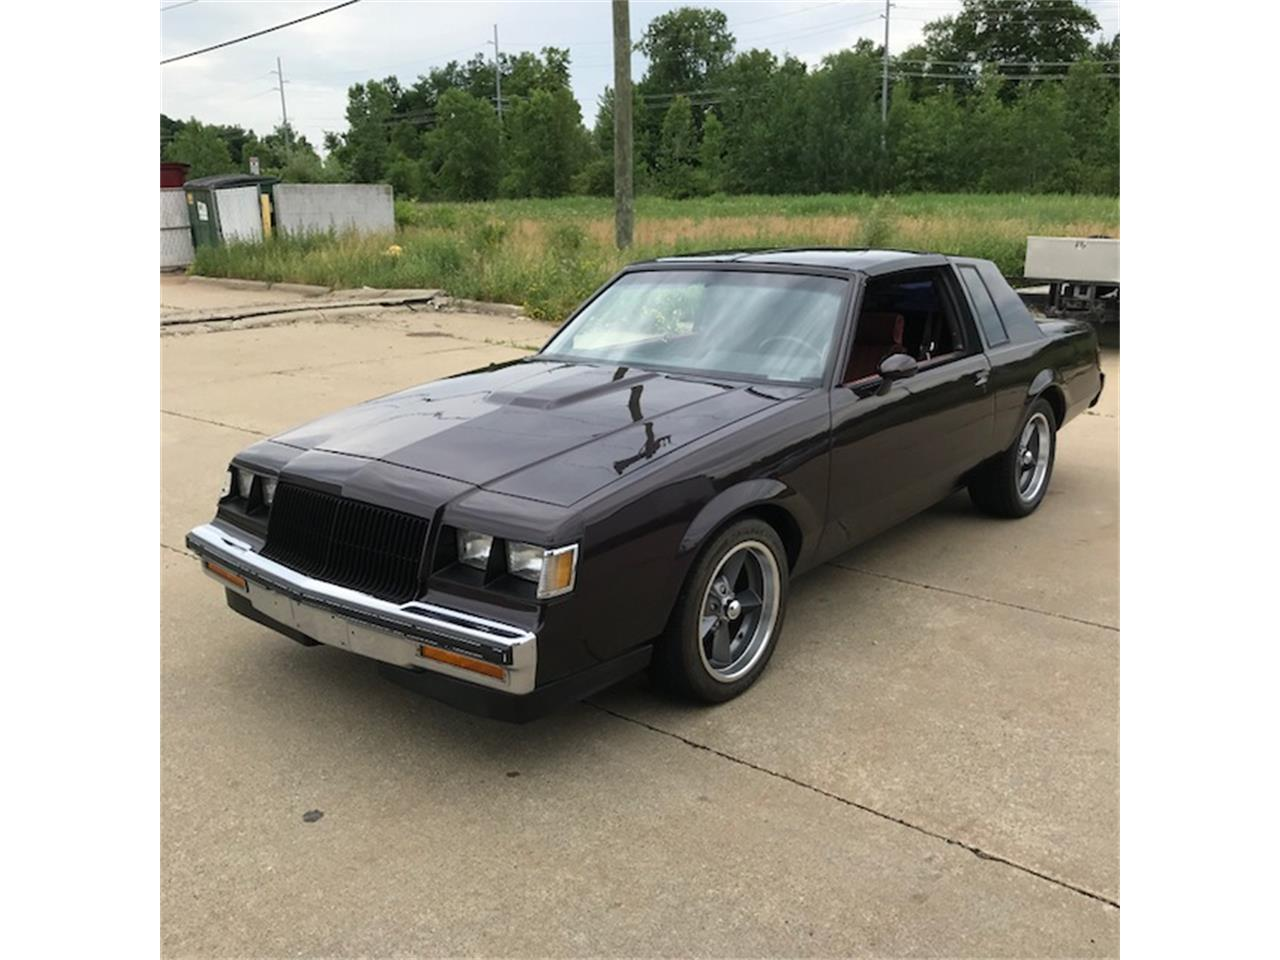 Buick T Type >> 1987 Buick T Type For Sale Classiccars Com Cc 1103569